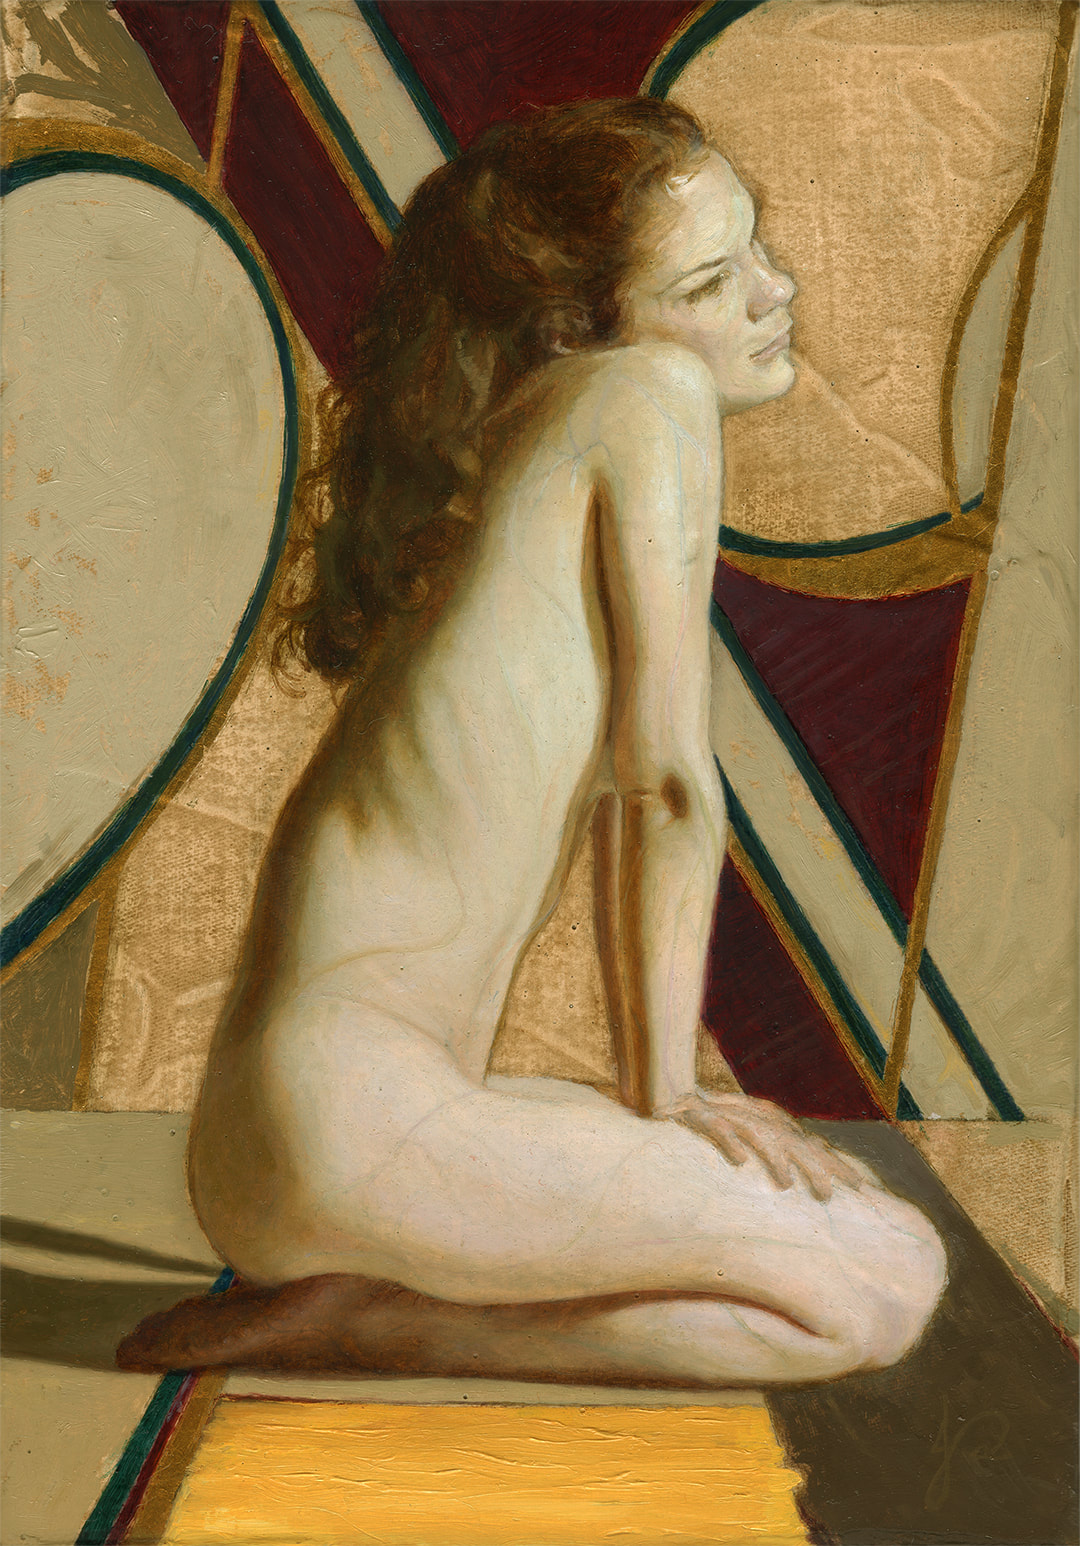 Child of Mars' Gold Gilded Oil painting by Jacqueline Gomez of Nude Female Figurative Artwork